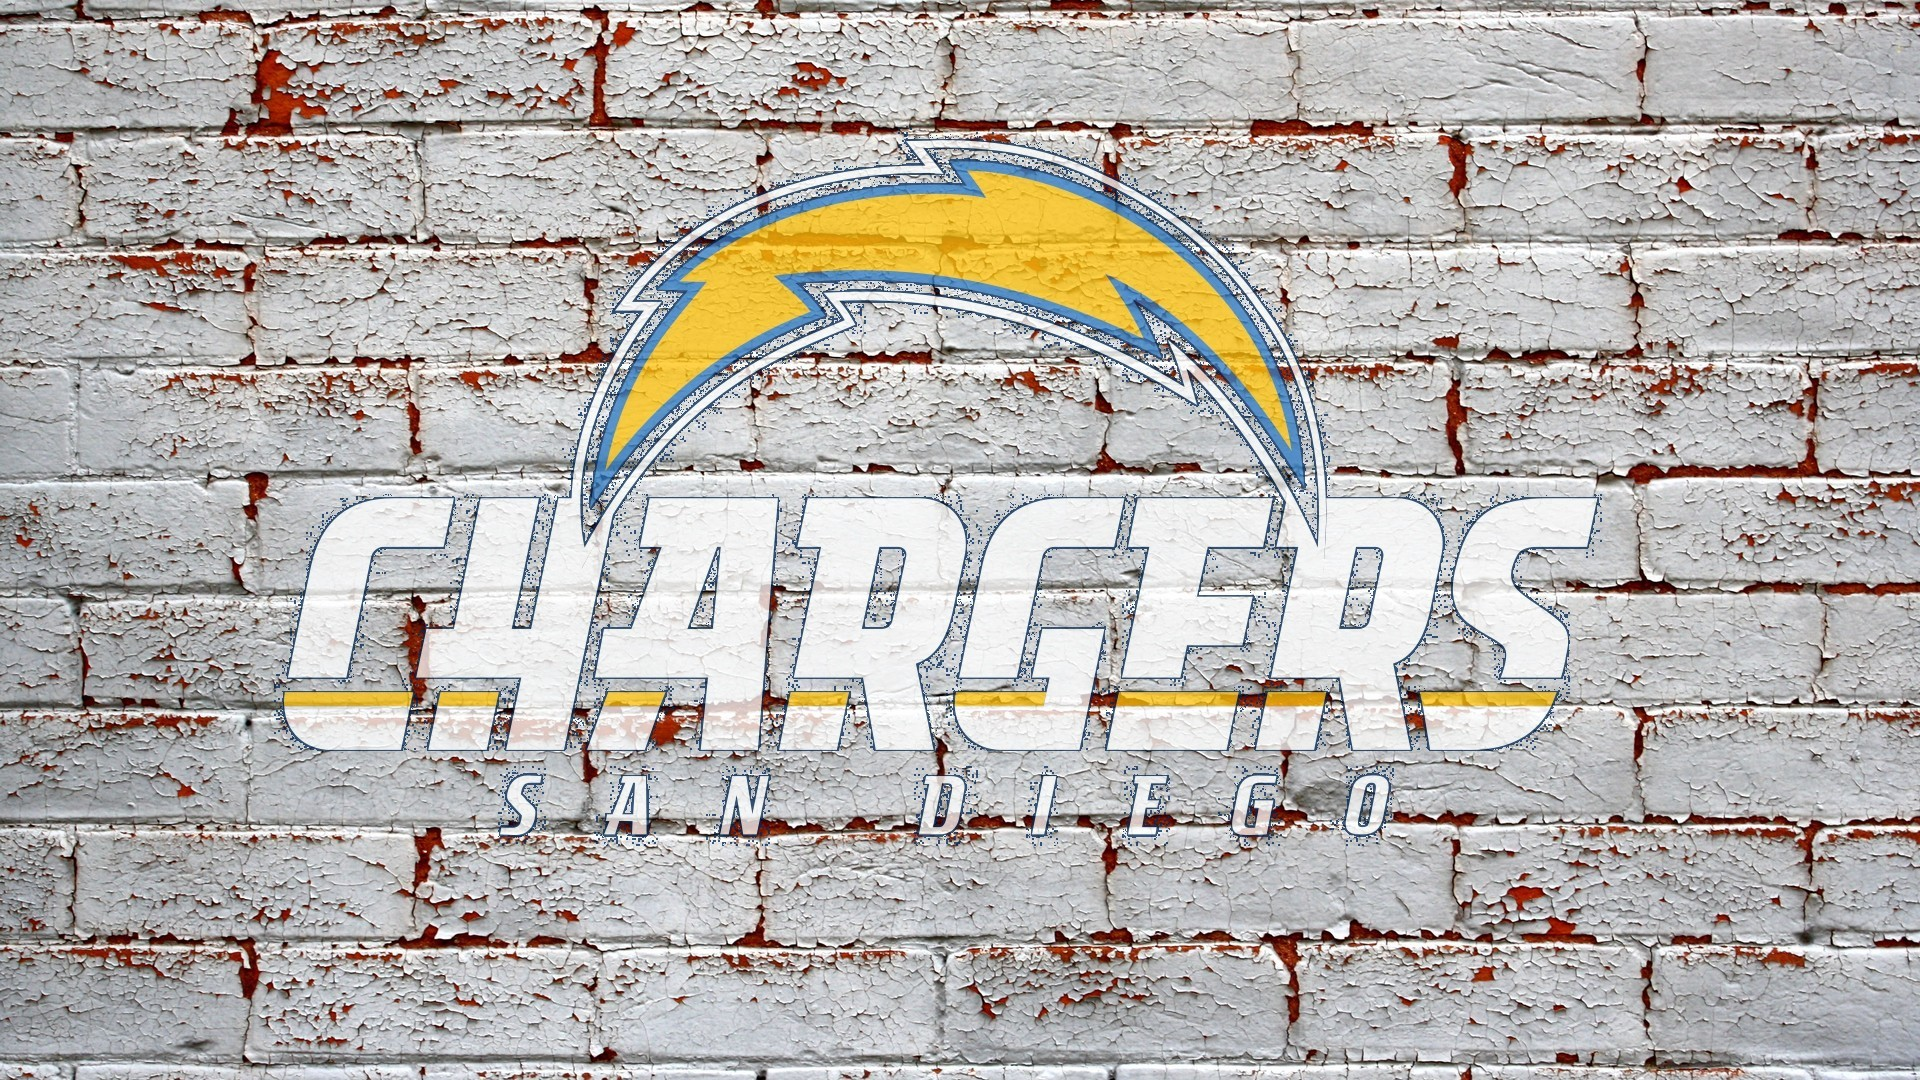 San Diego Chargers Wallpapers 183 ①